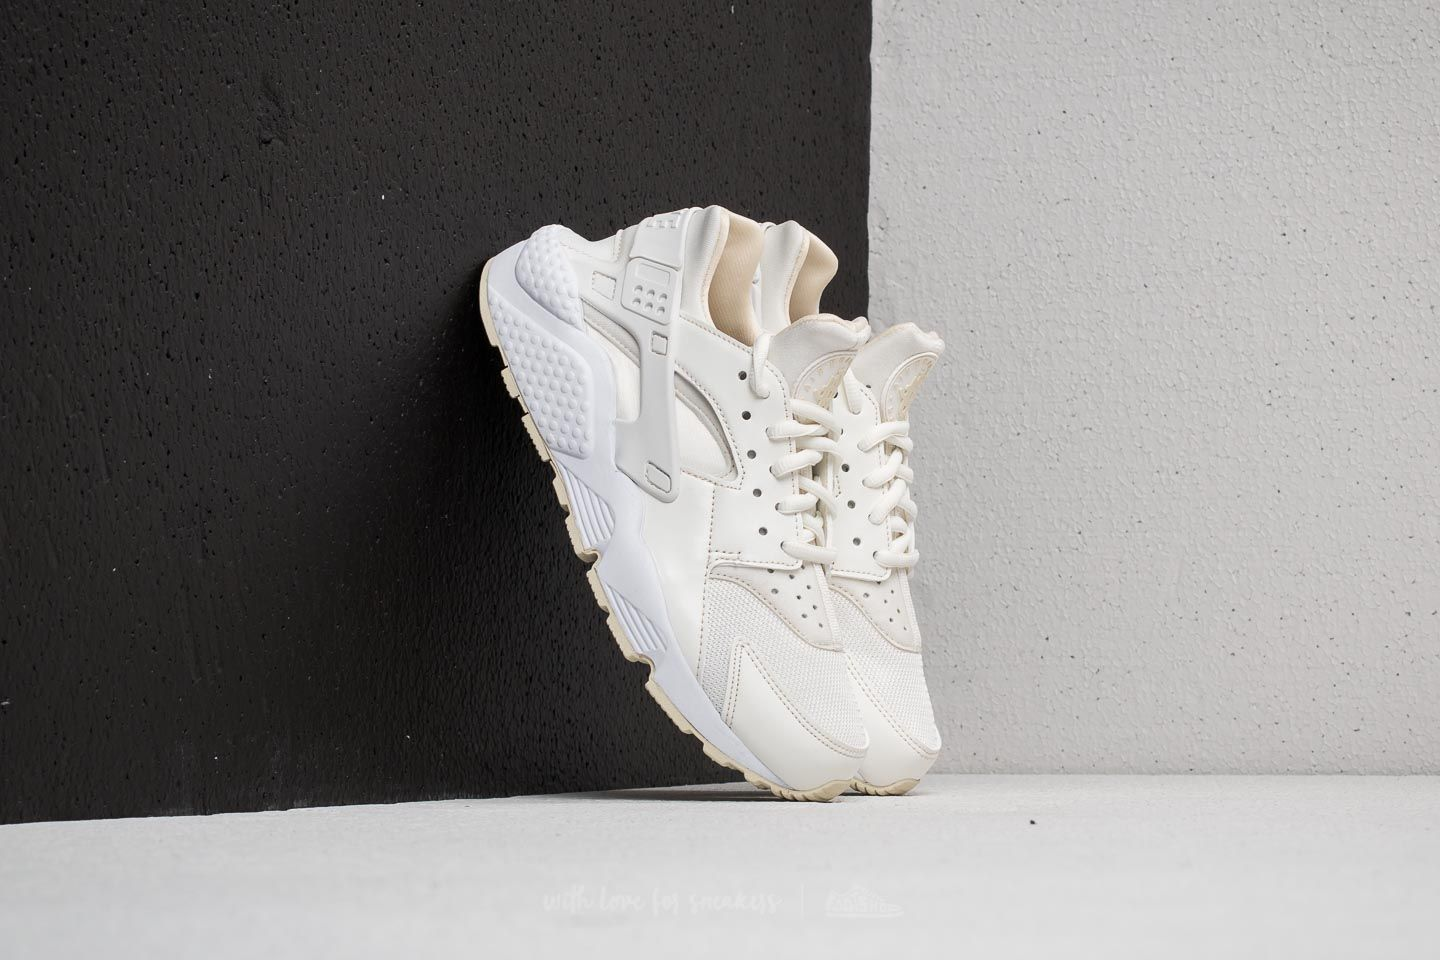 97c1a171dca4 Nike Wmns Air Huarache Run Sail  Fossil-White